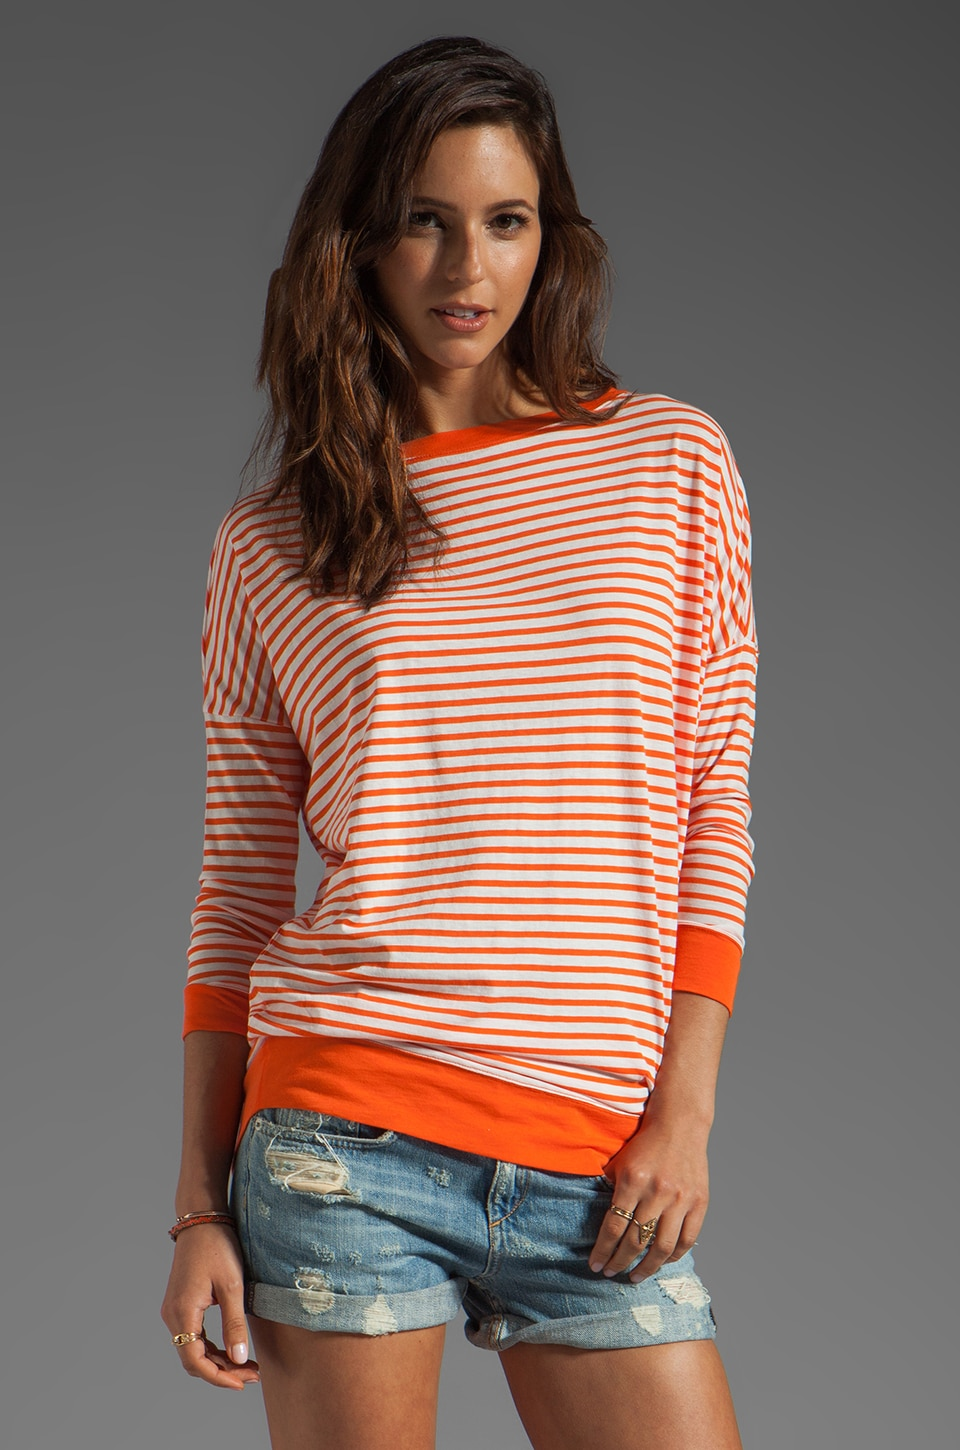 DemyLee Charlie Sailor Stripe Long Sleeve Top in White/Orange